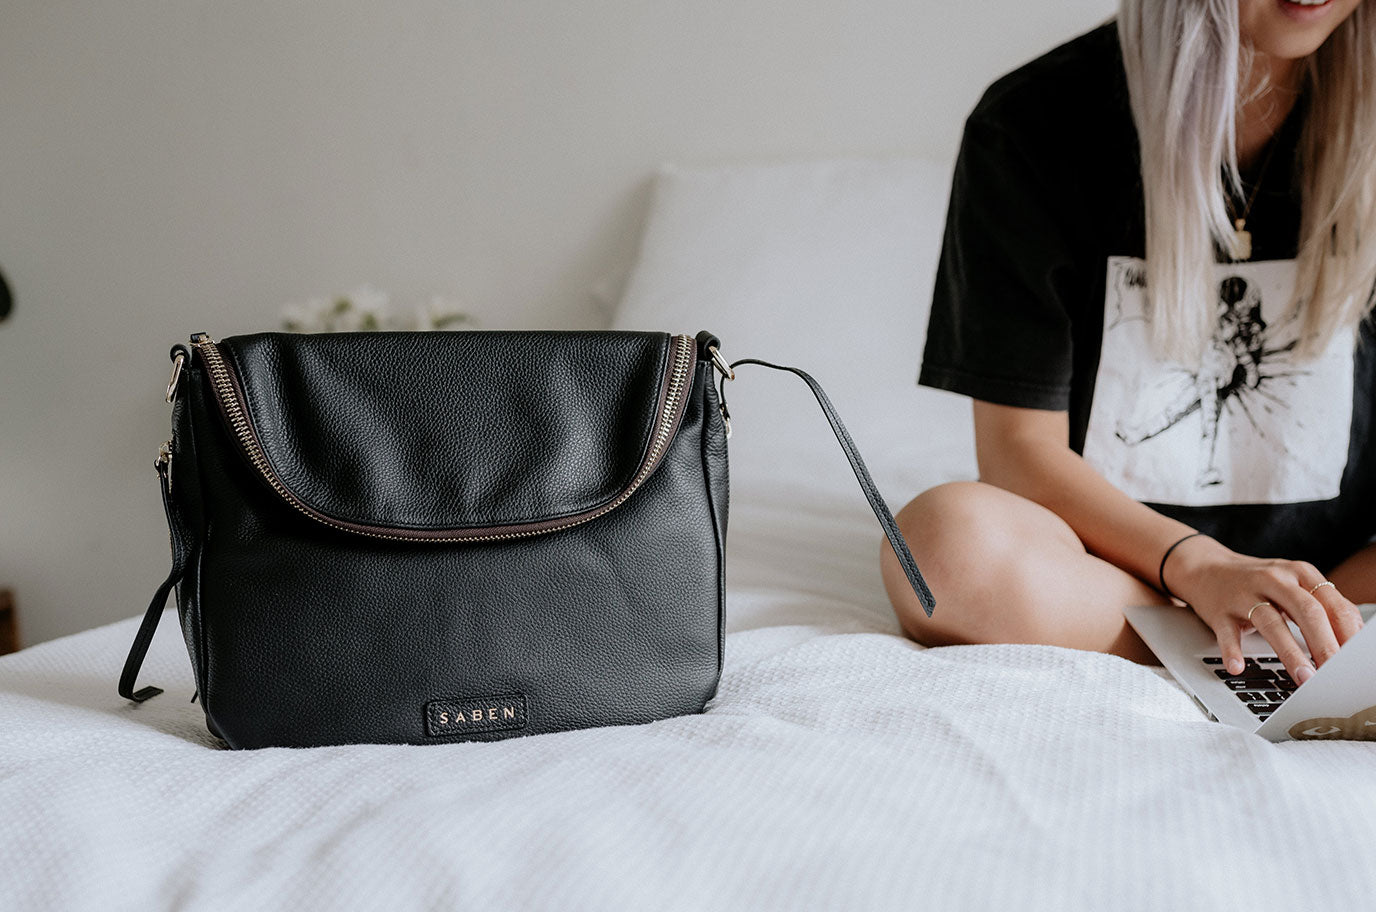 In conversation with Sue Ryu for Mothers Day 2021 for saben handbags